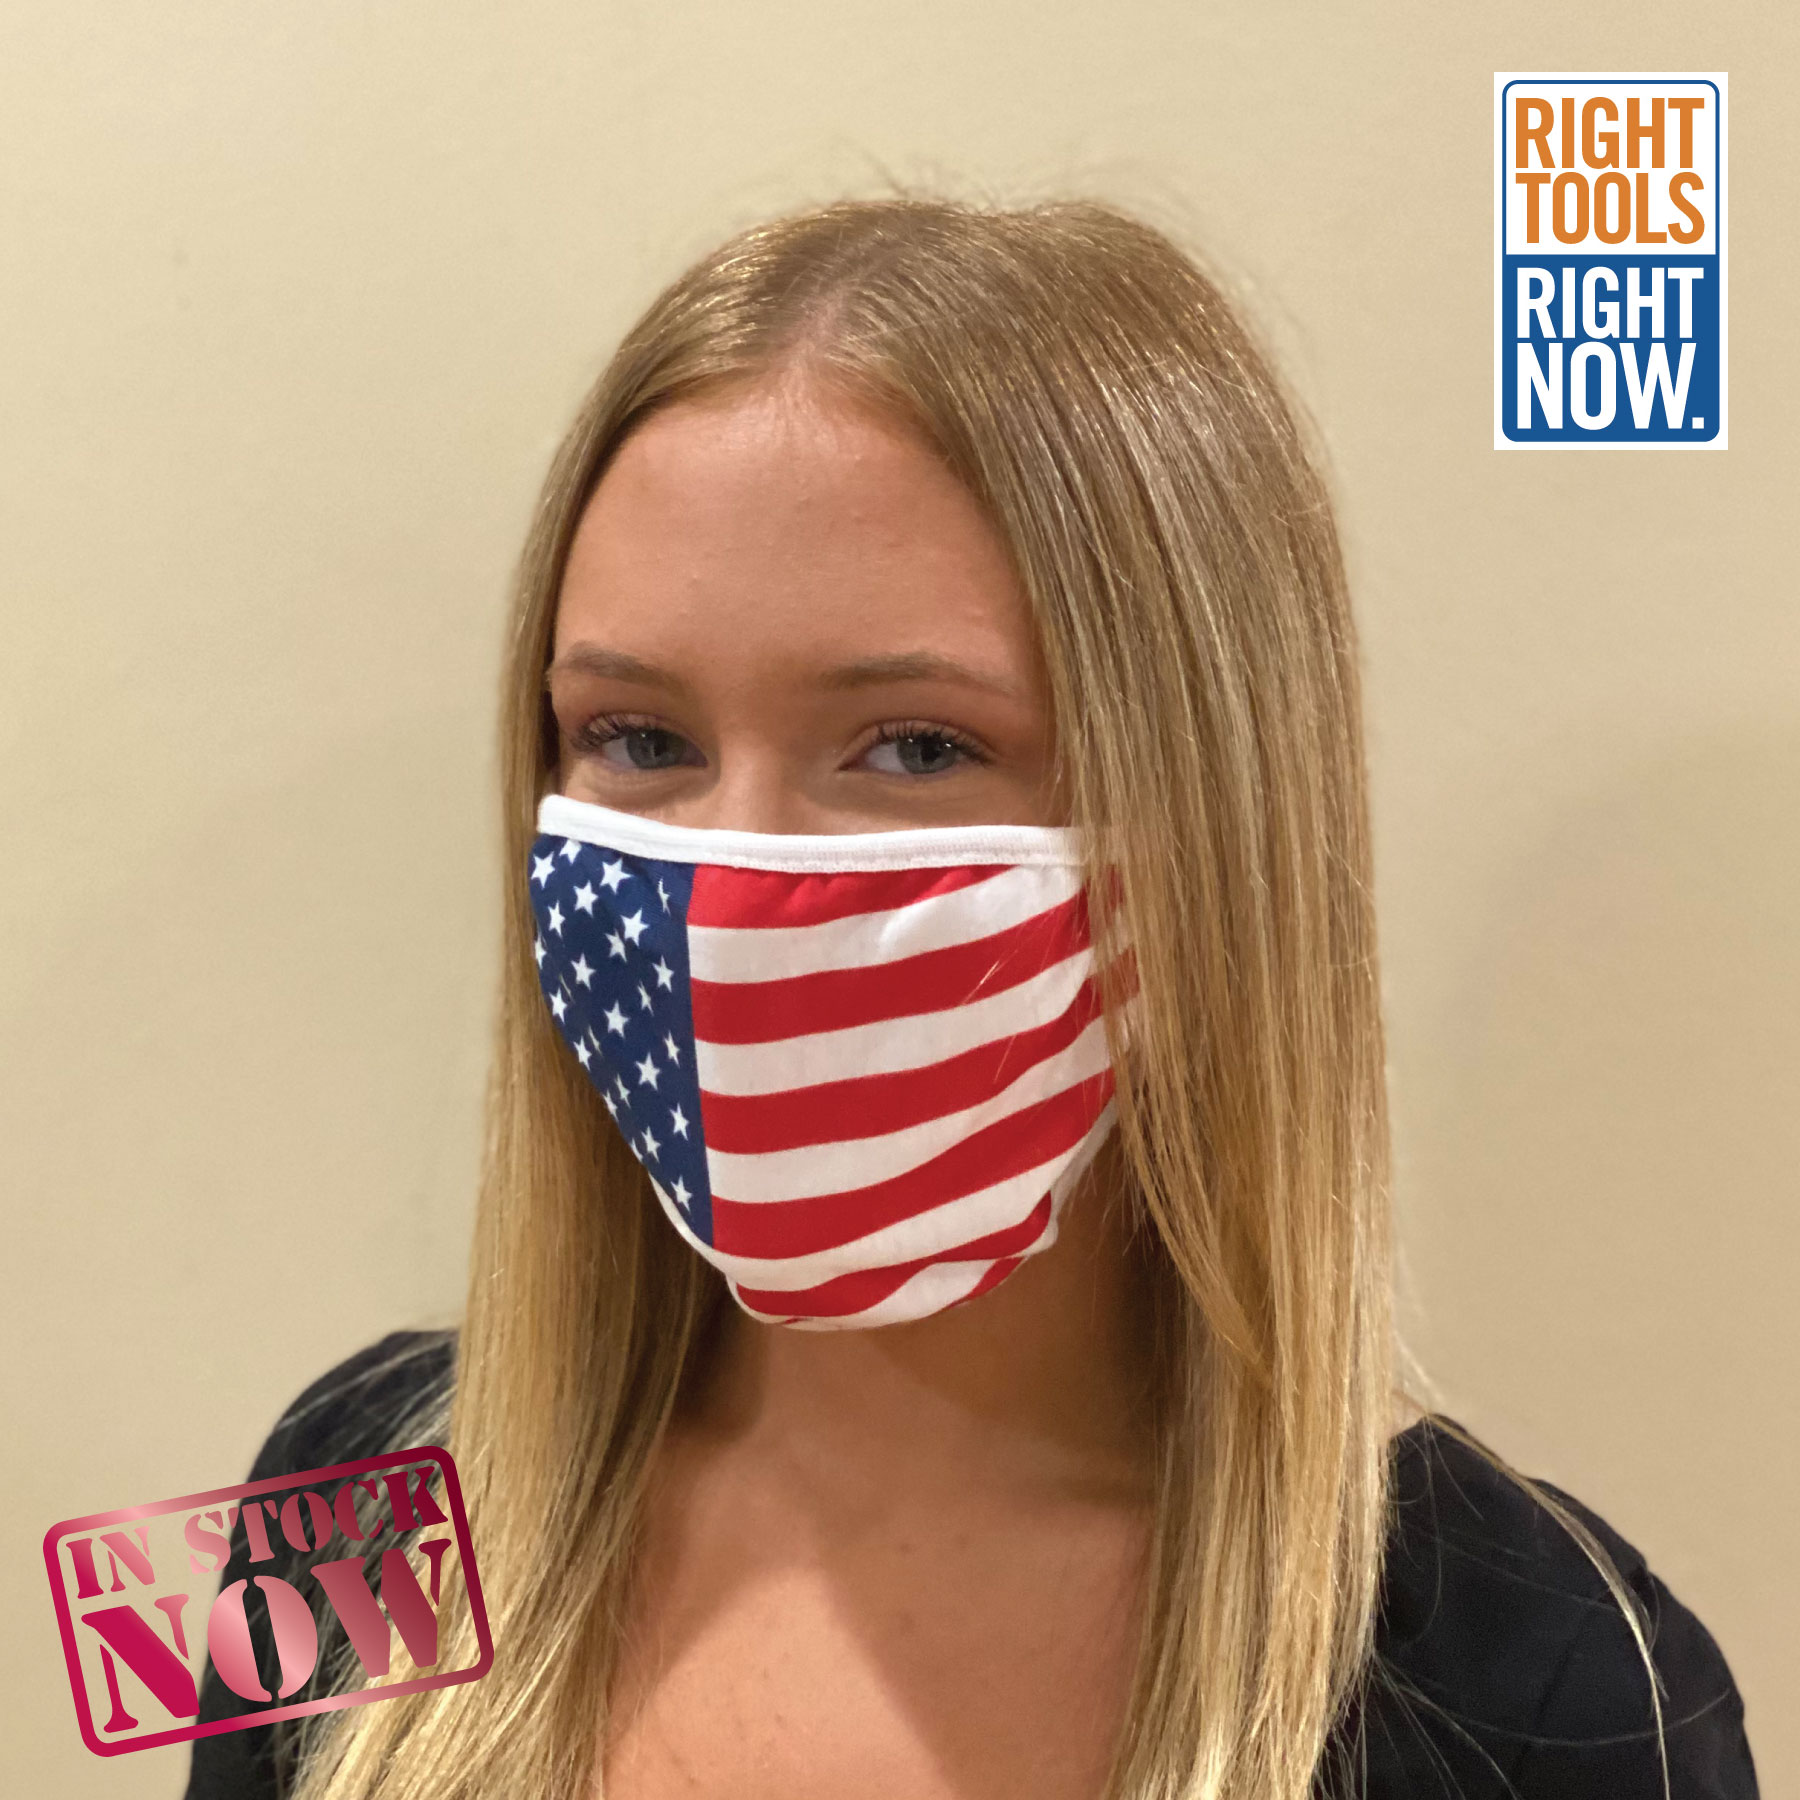 In Stock: 2 Layer USA Flag Mask Faces,Masks,Shields,COVID,COVID-19,SARS,Virus,Viruses,Coughs,Safety